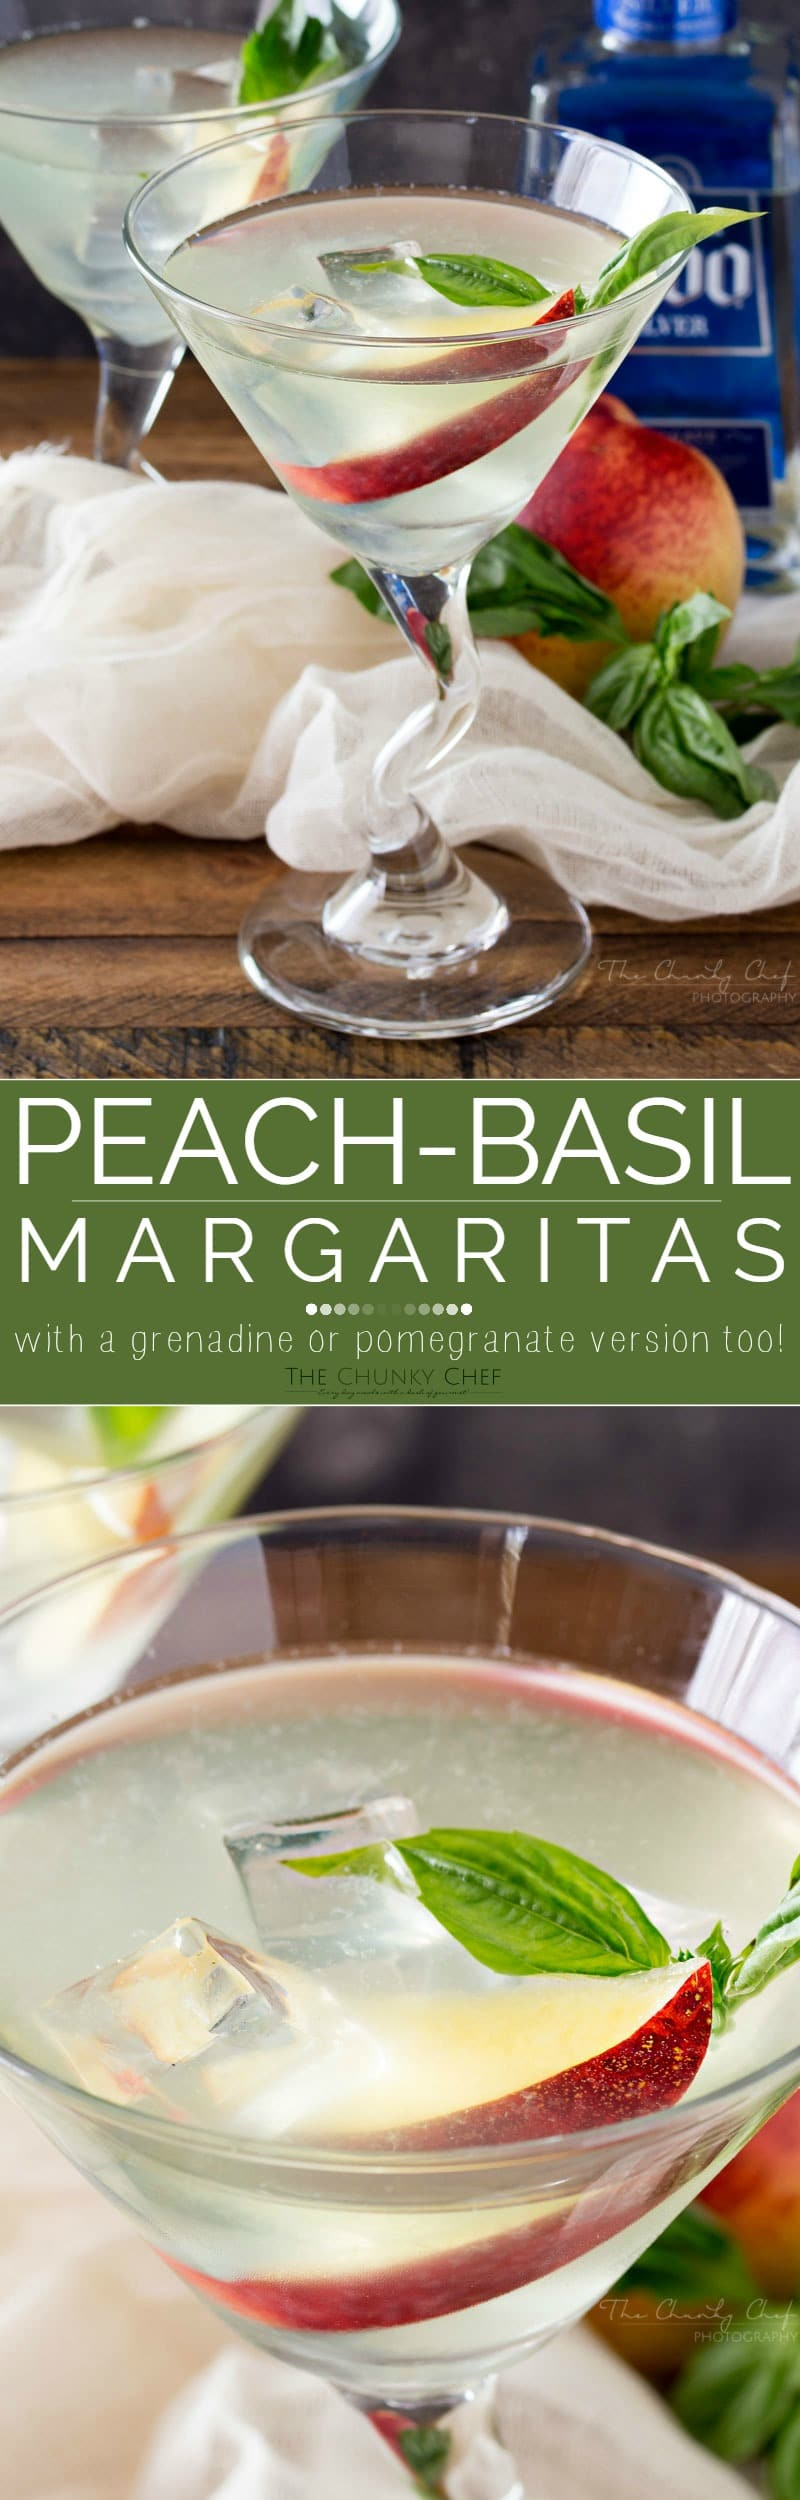 Peach Basil Margaritas | This peach basil margaritas recipe is a refreshing twist on a classic margarita! With a slice of fresh peach and a sprig of basil, it's sure to impress! | http://thechunkychef.com